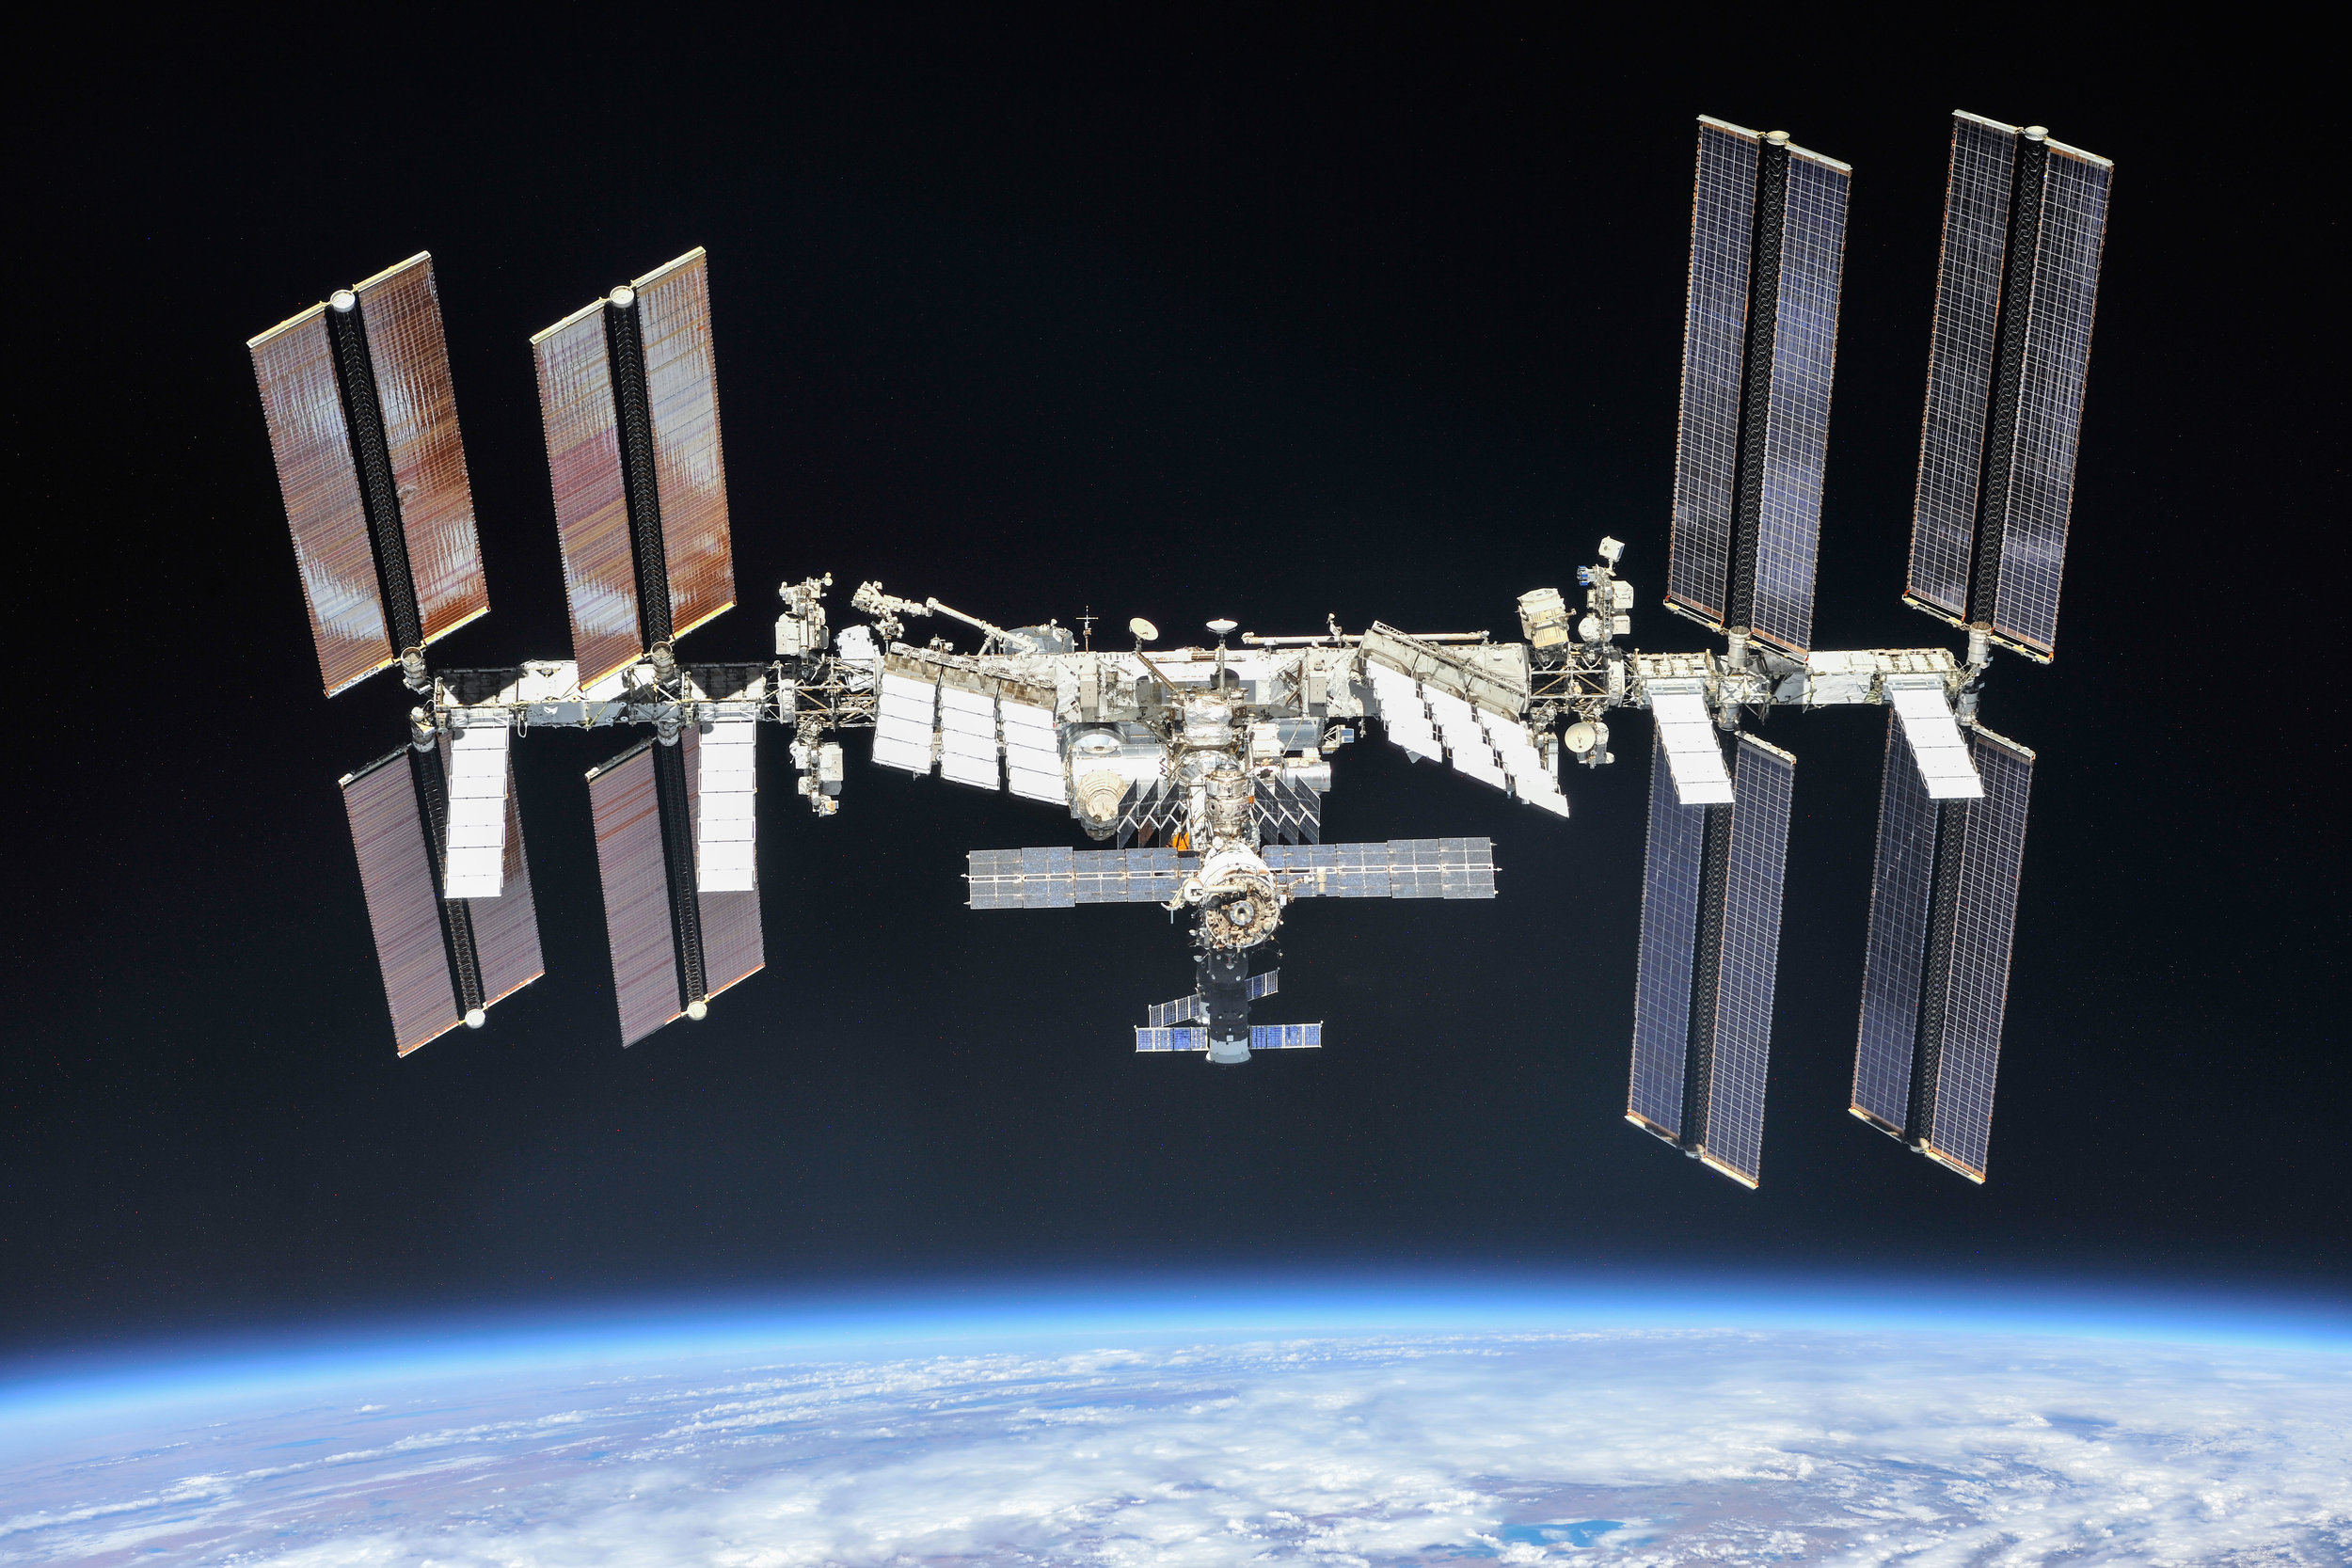 the-international-space-station-as-of-oct-4-2018_31763901878_o.jpg